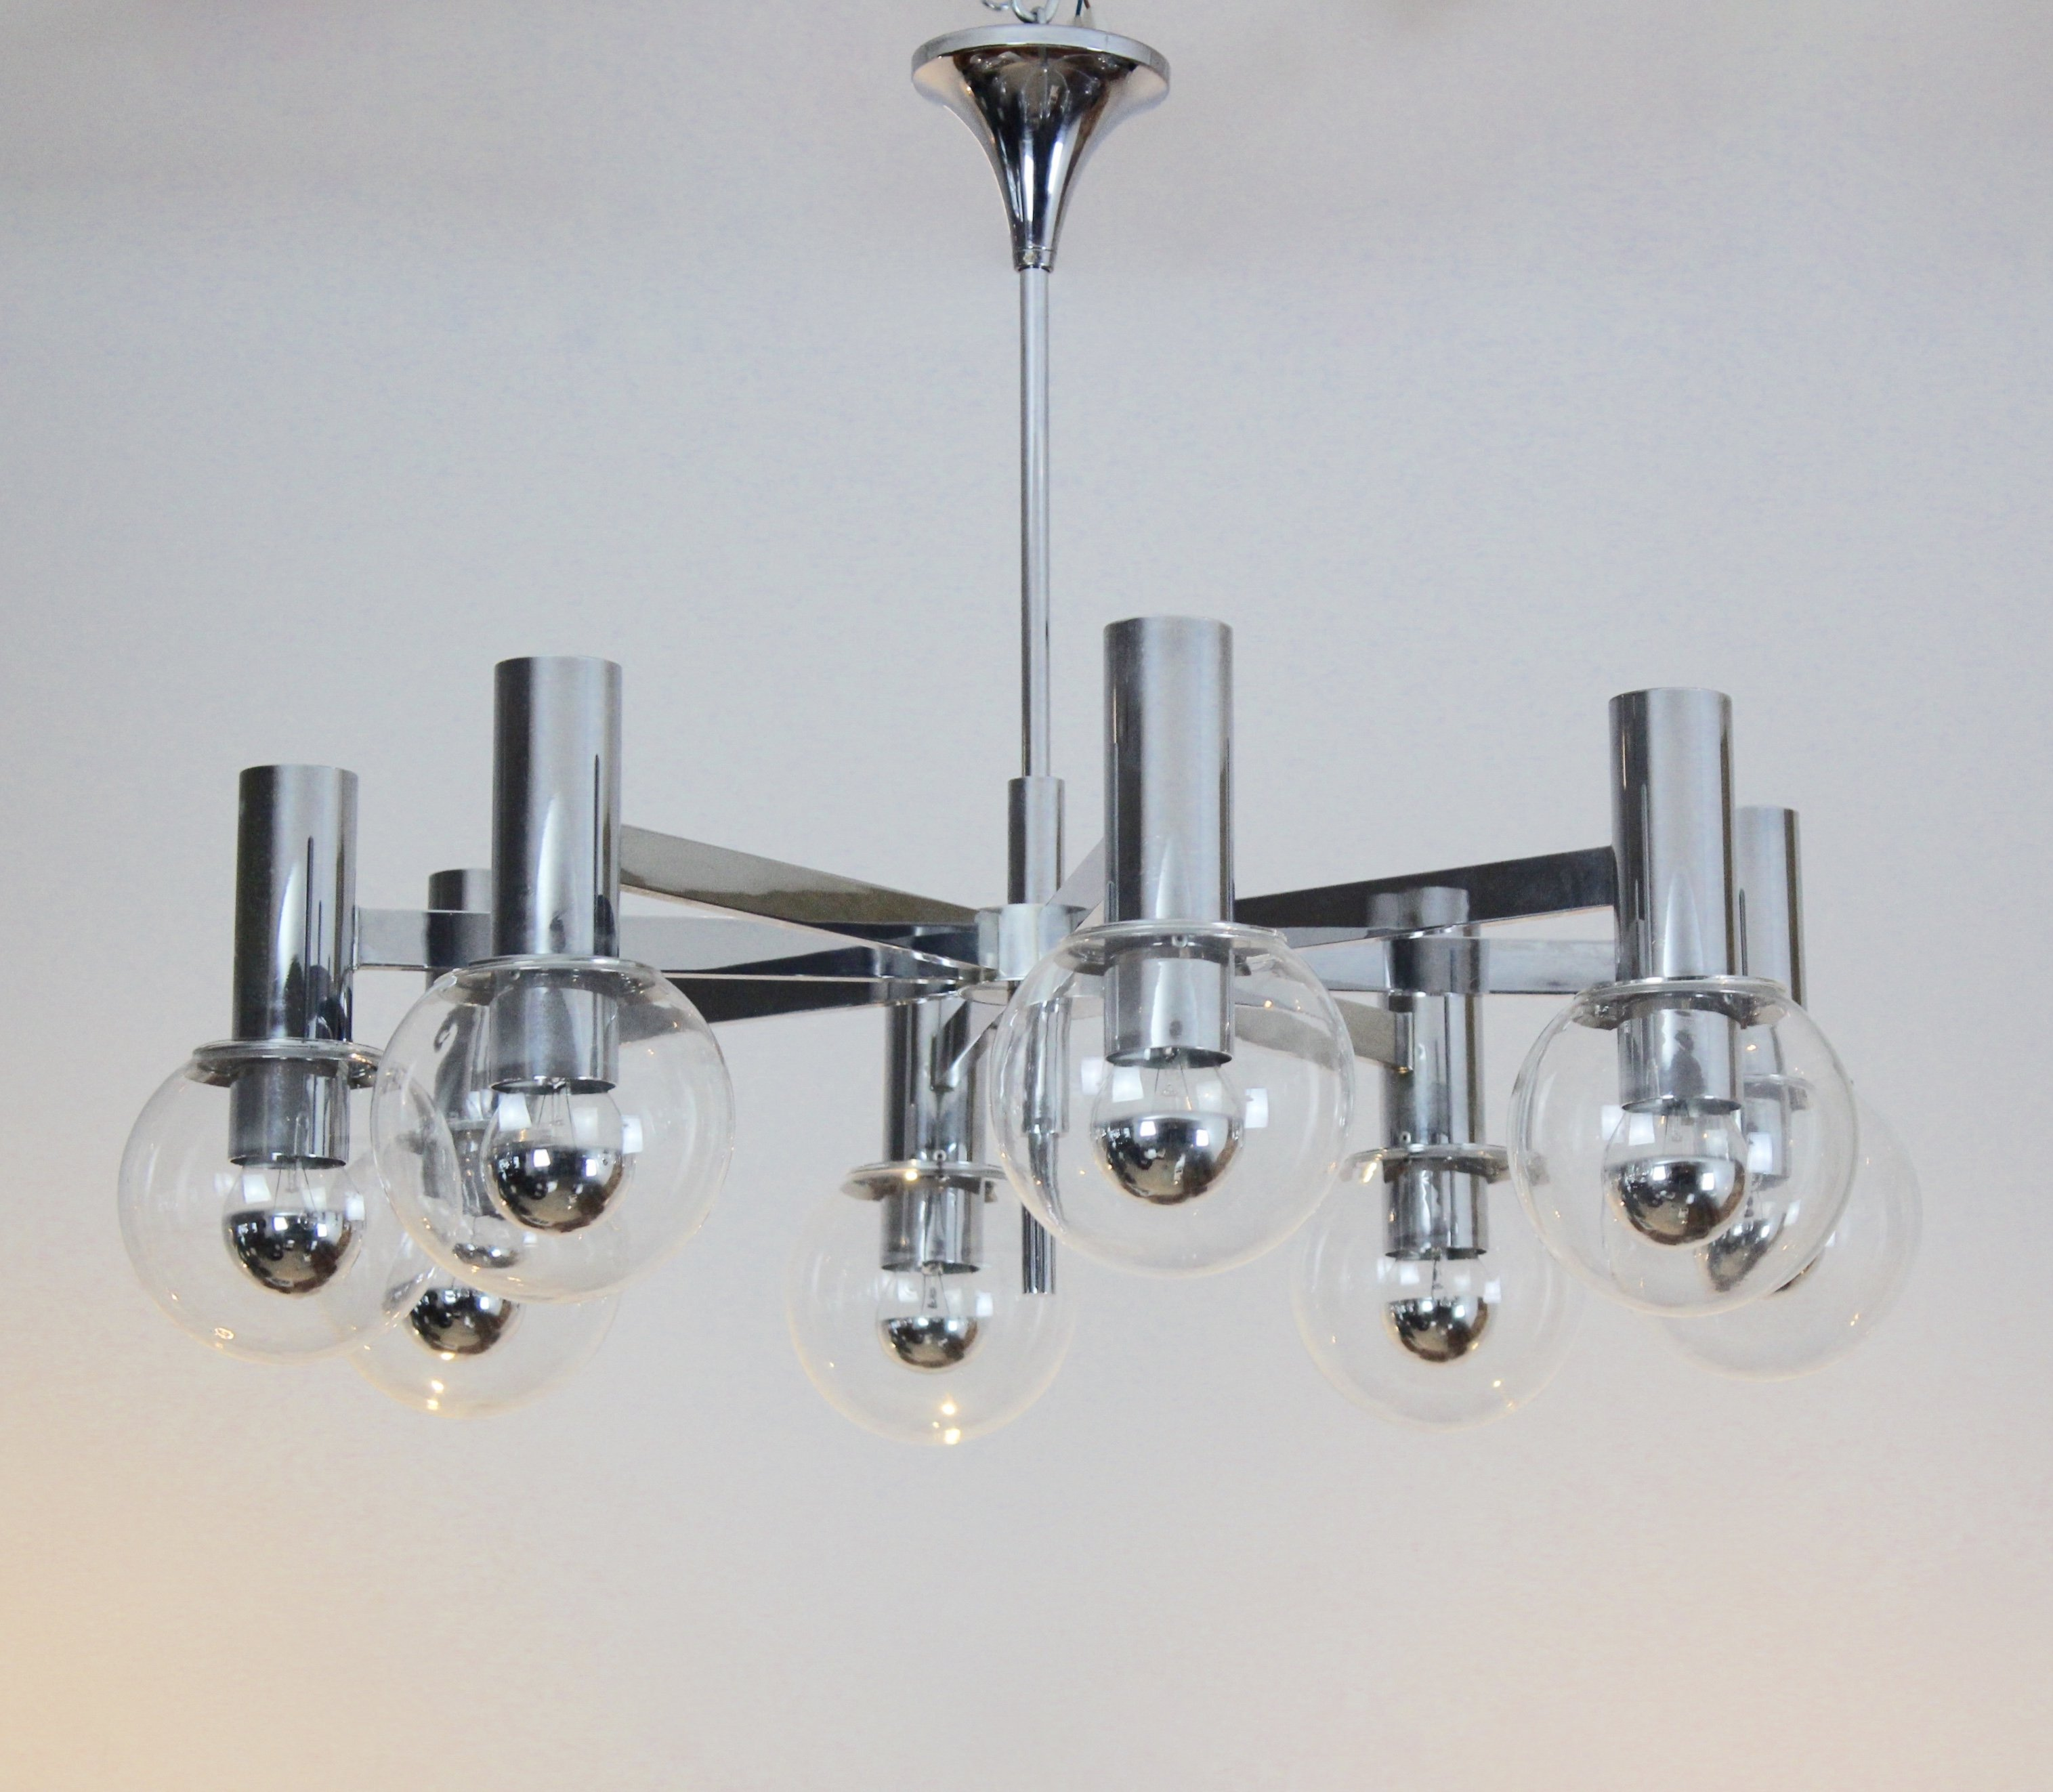 Leuchten Kaiser Elegant Chrome & Glass Chandelier By Kaiser Leuchten, Germany | #96553